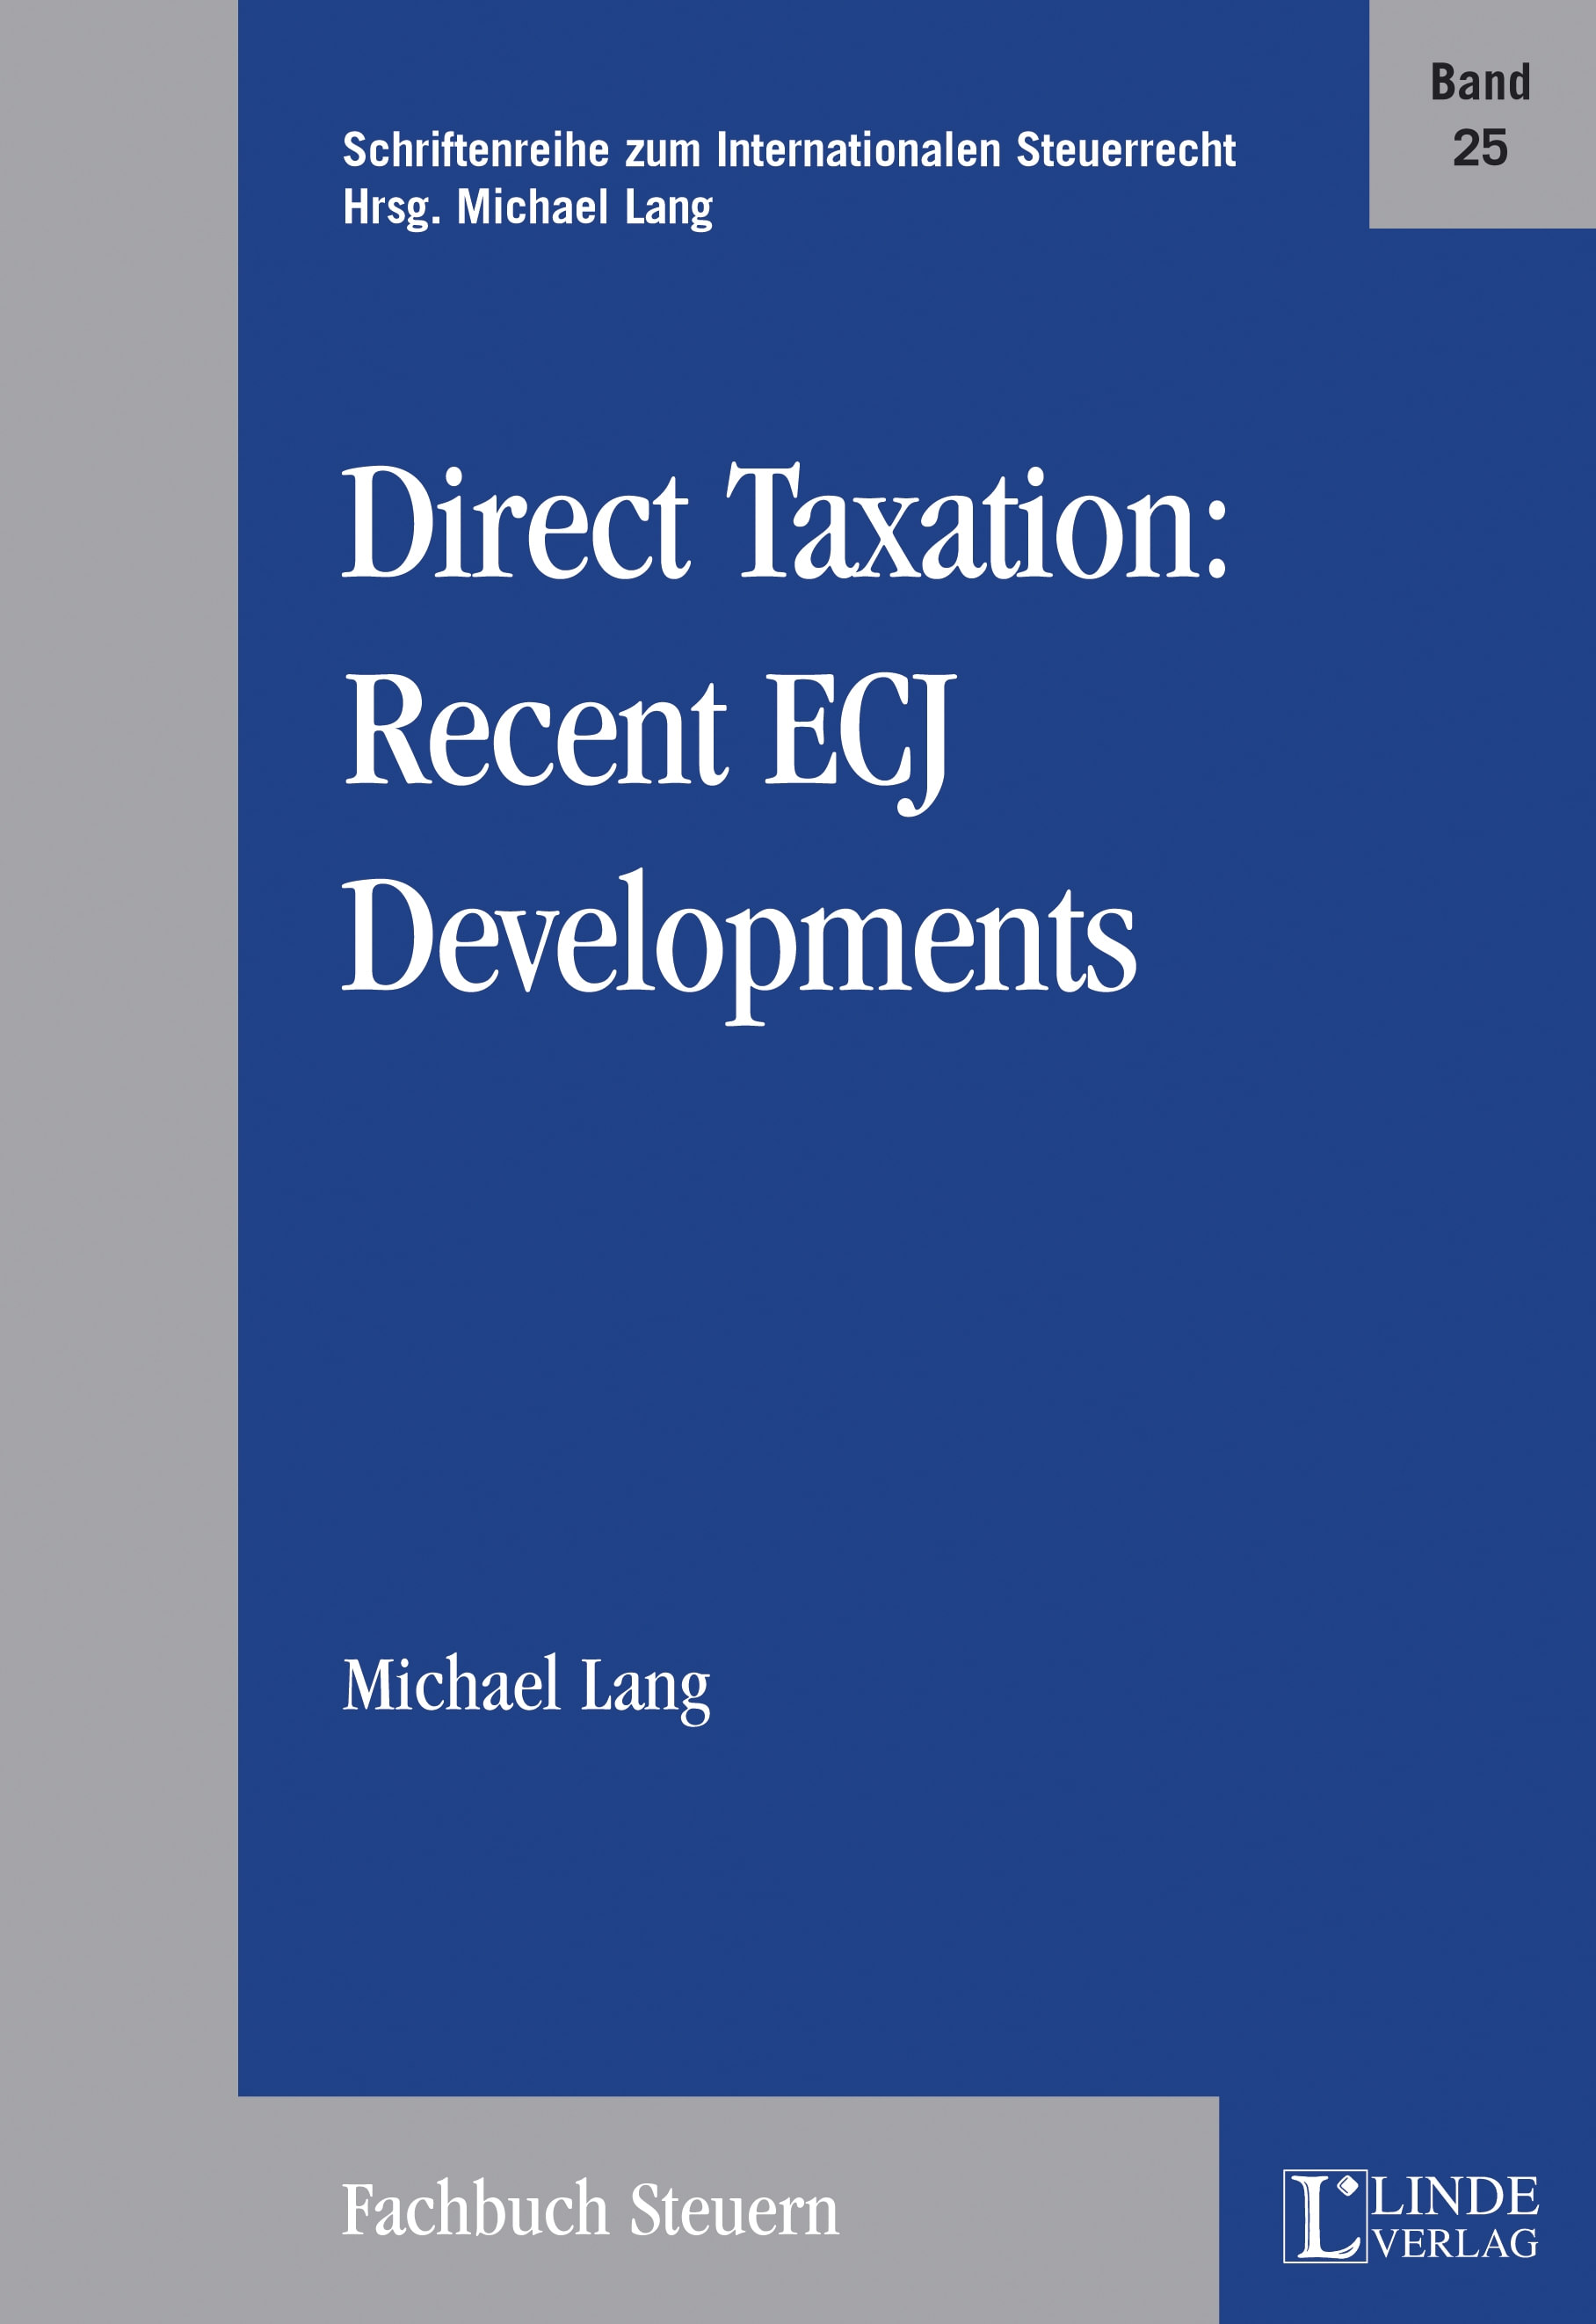 direct tax A direct tax is a tax paid directly to the government by a person or organization a direct tax may not be passed on to another person or entity but must be paid by the entity responsible for the tax a direct tax is different from an indirect tax, which is paid by someone other than the person.